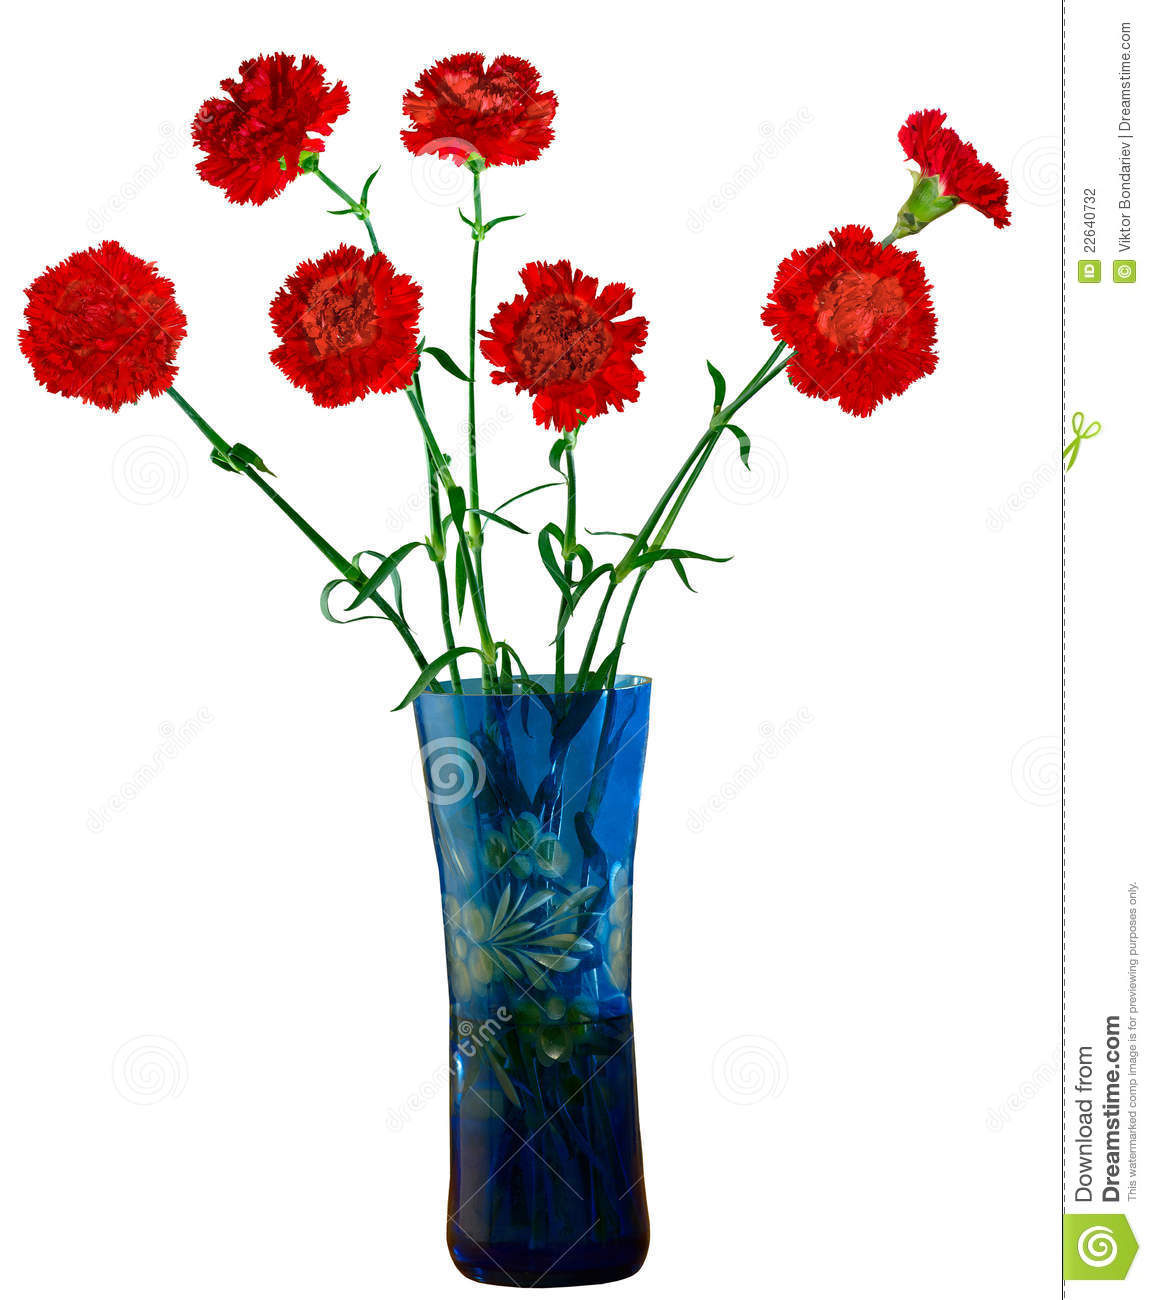 Flowers in a vase stock photo. Image of vase, decoration ...